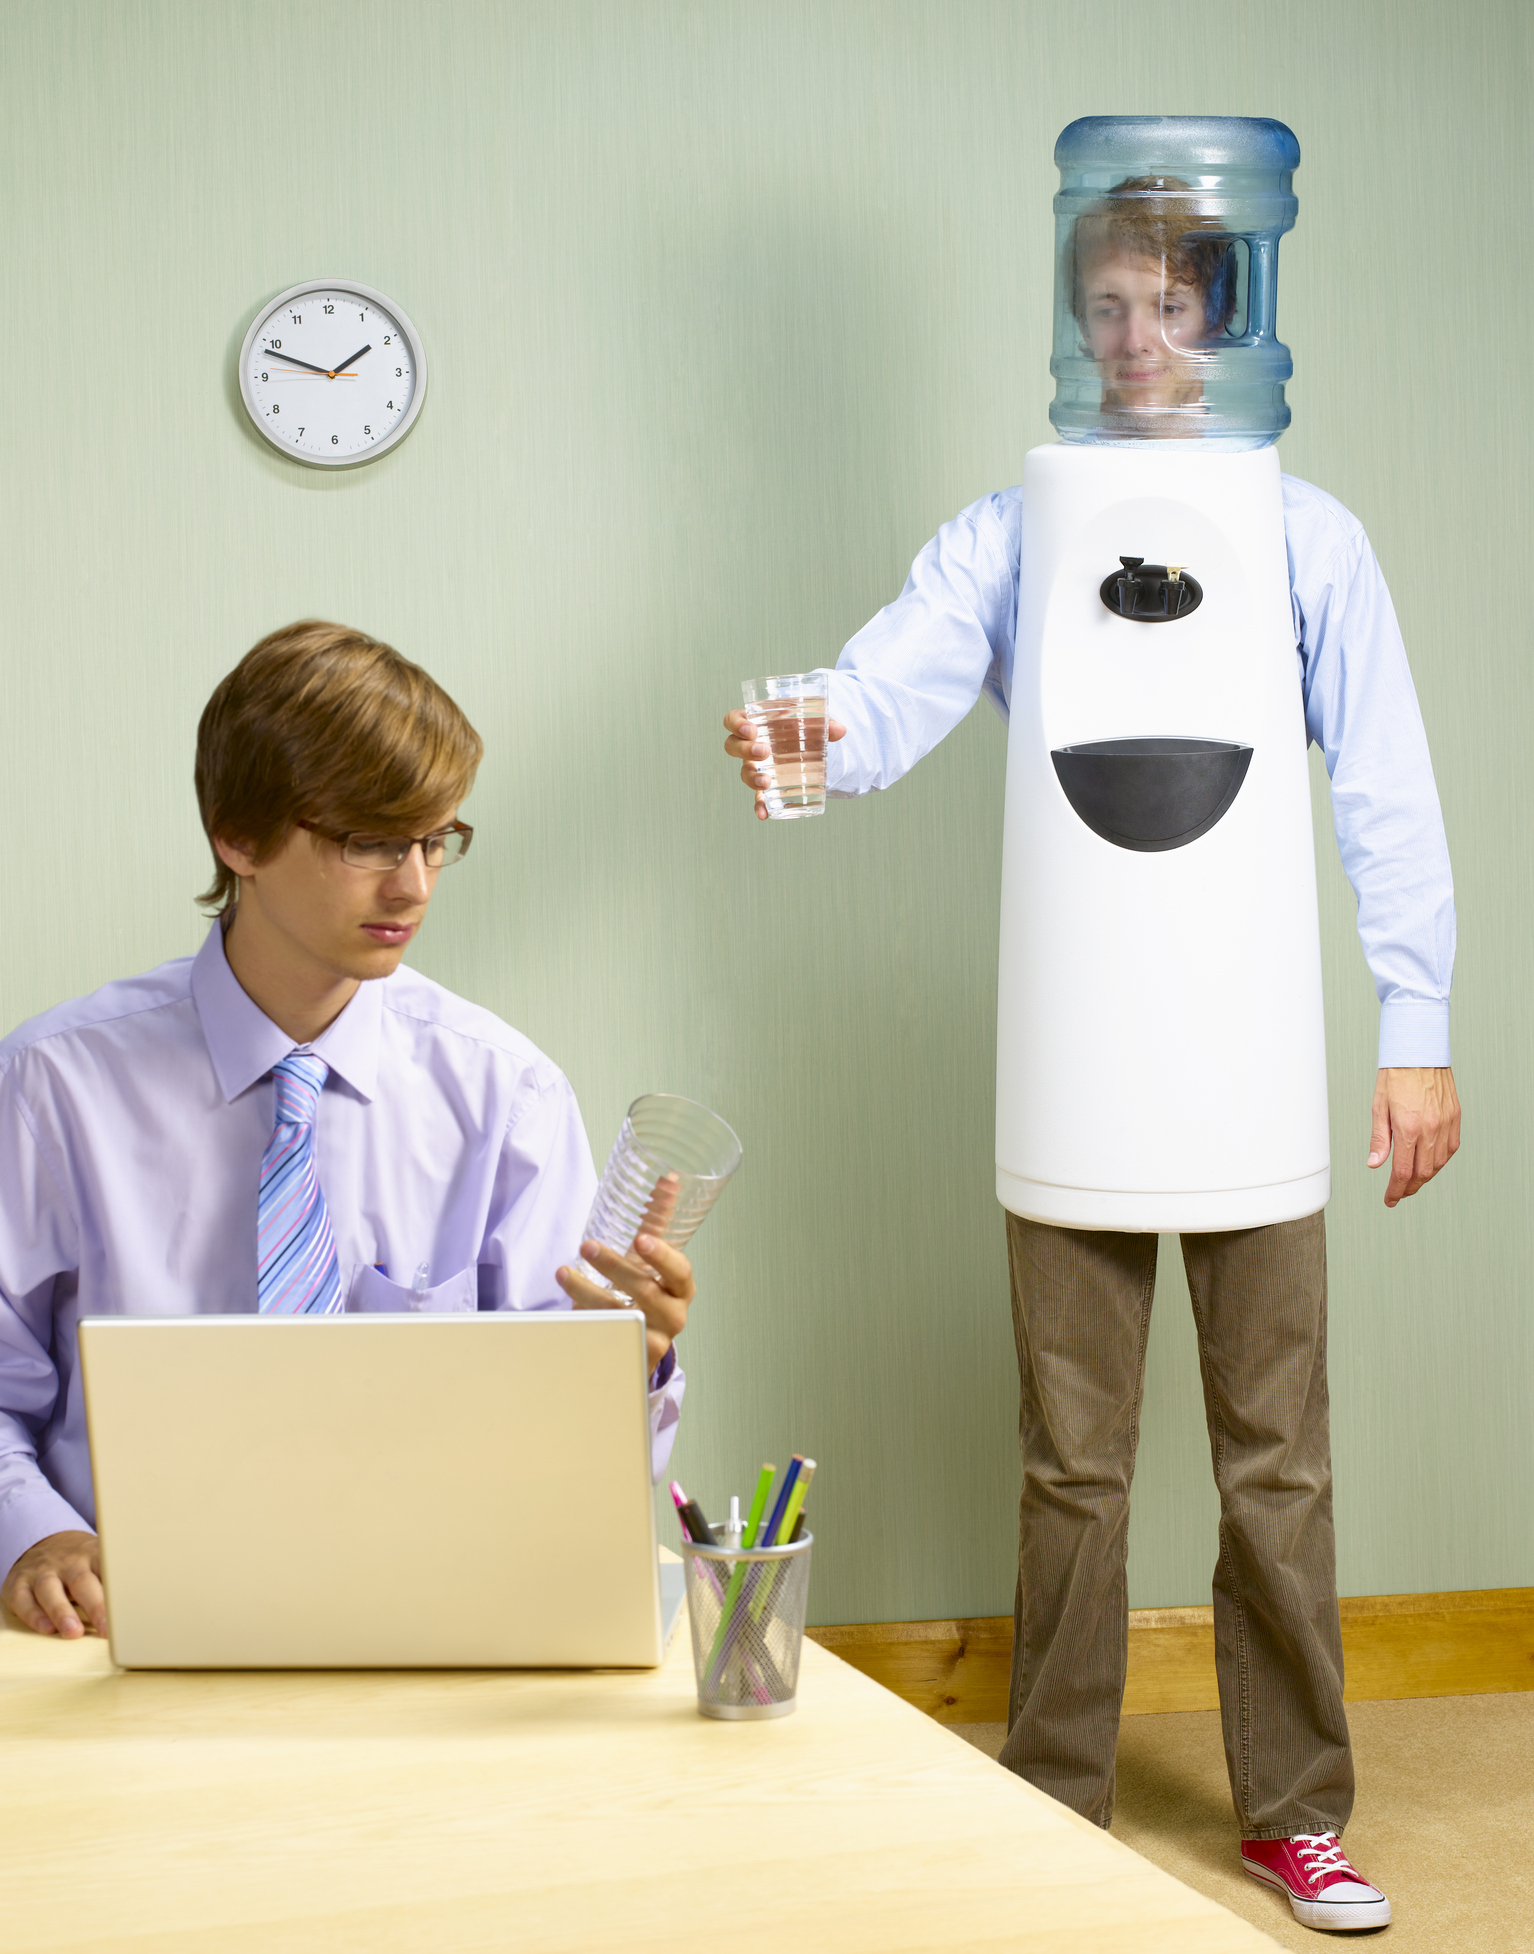 water-cooler-costume.jpg